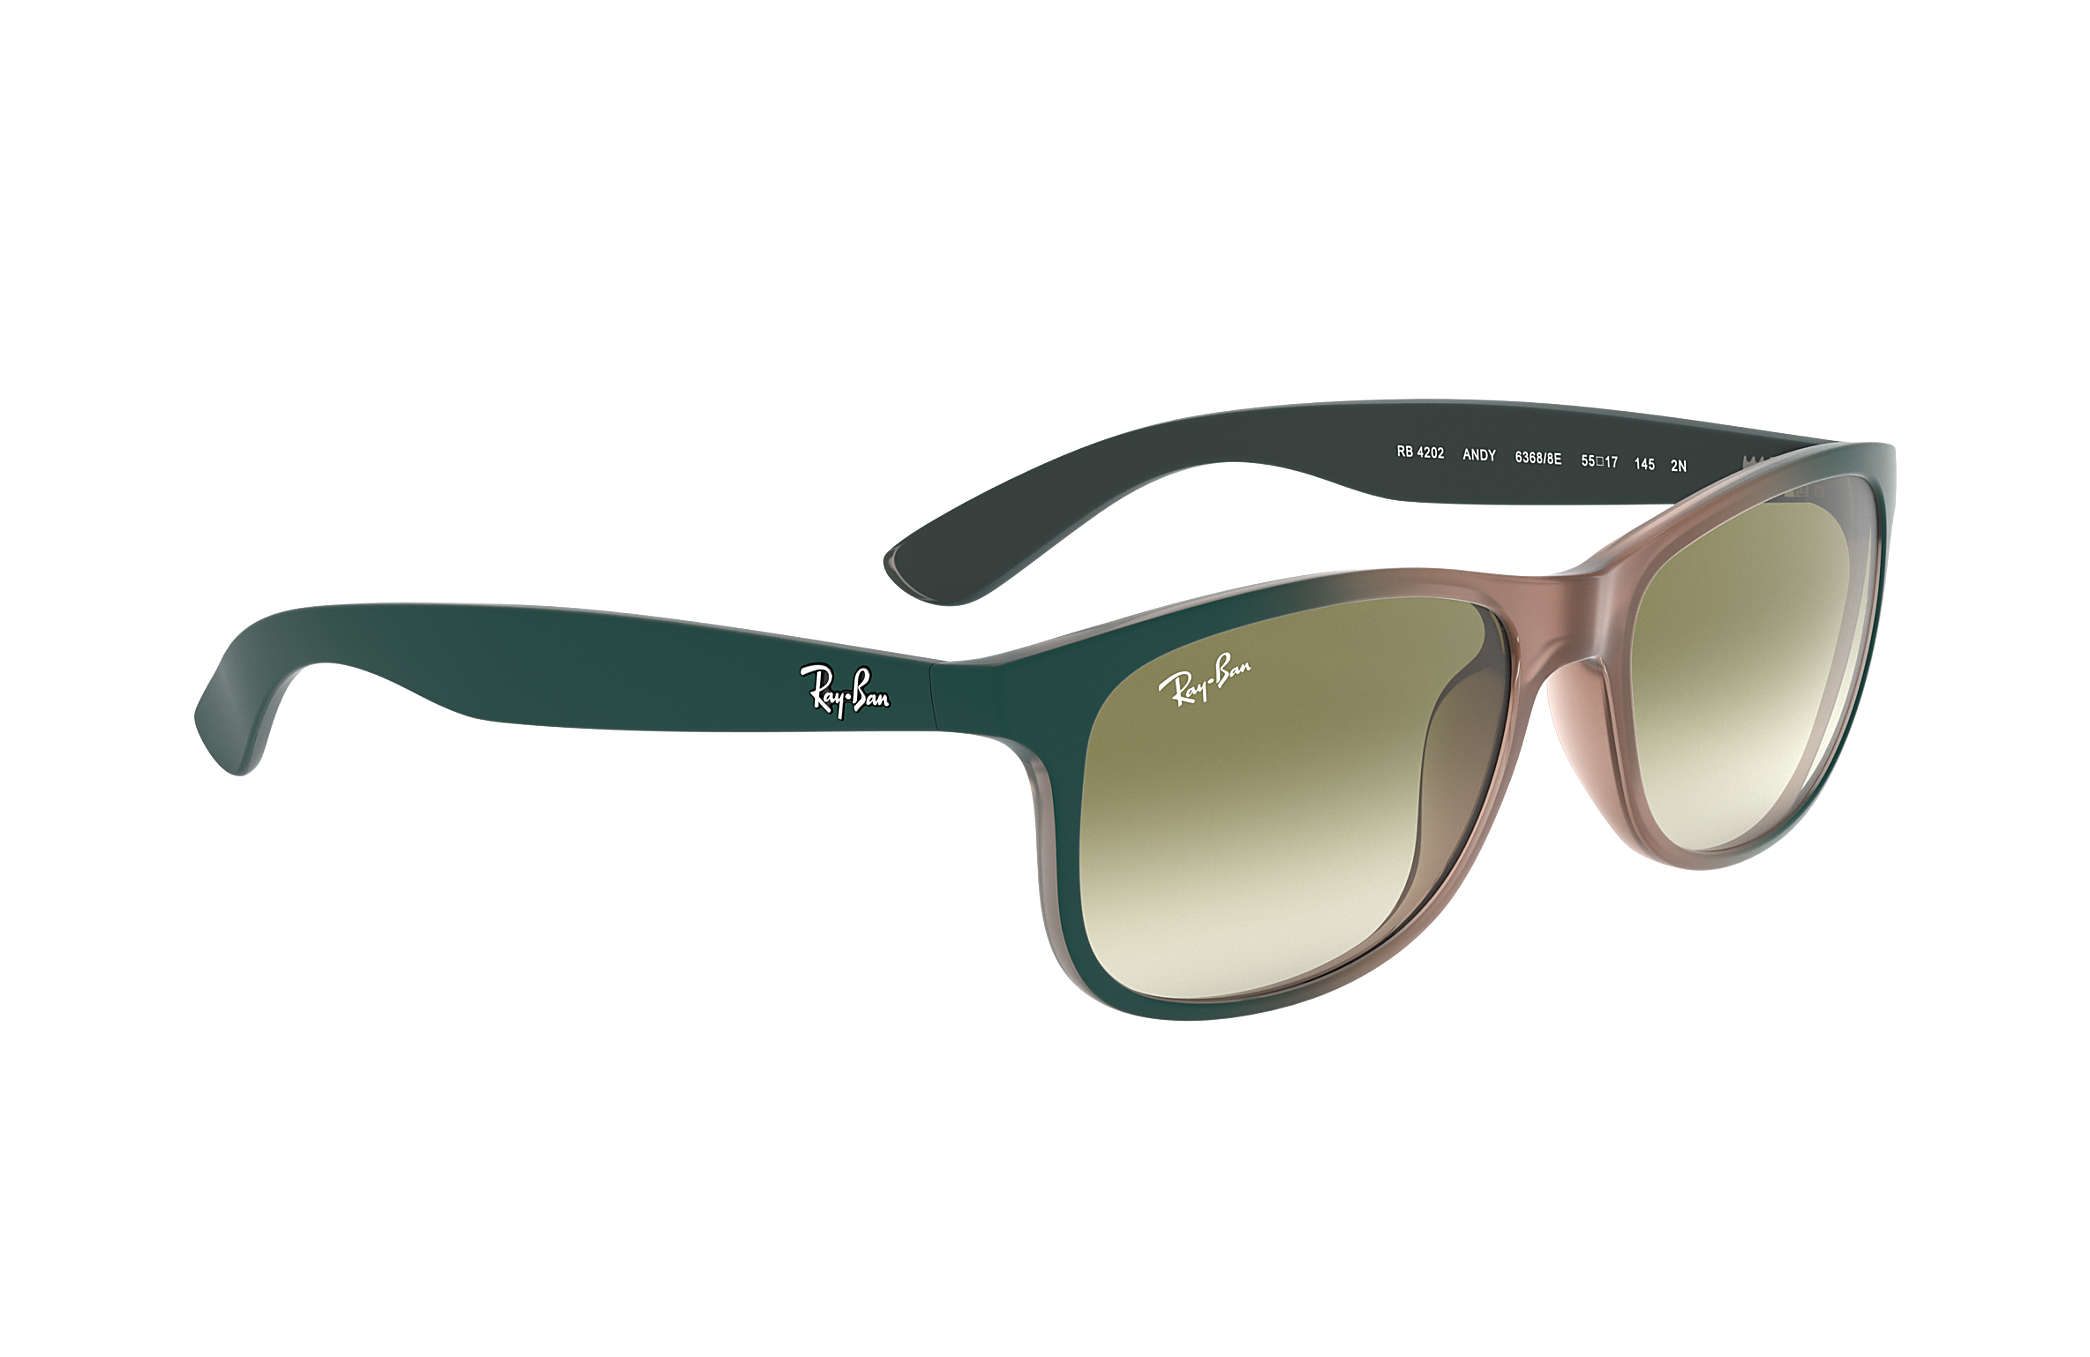 1705c9a81e787 Ray-Ban Andy RB4202 Light Brown - Nylon - Green Lenses ...